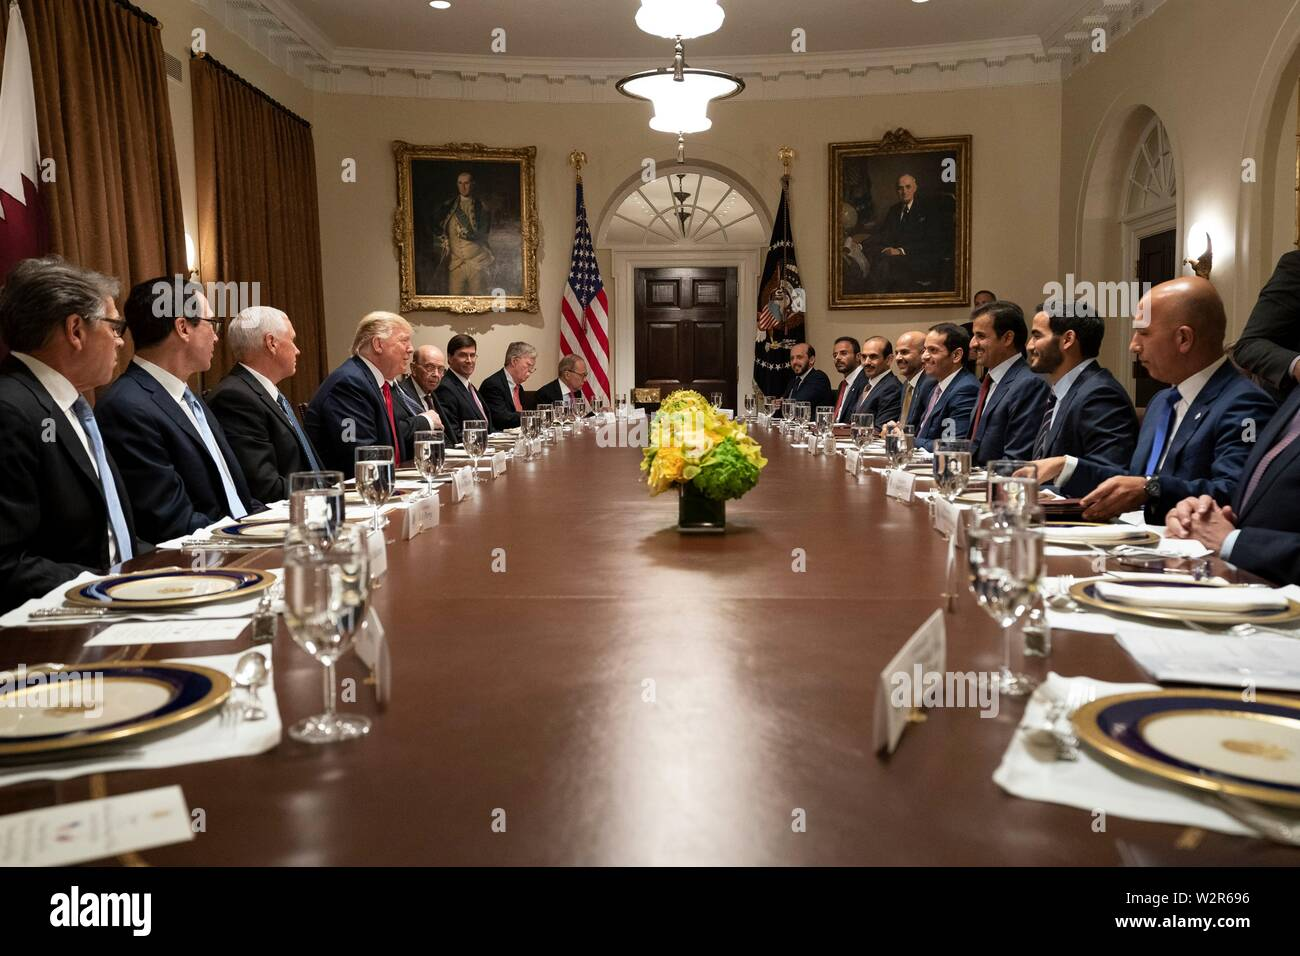 U.S President Donald Trump, joined by Vice President Mike Pence and Cabinet members, participate in an expanded working luncheon with the Emir of Qatar, Tamin bin Hamad Al Thani and delegates at the Cabinet Room of the White House July 9, 2019 in Washington, DC. - Stock Image